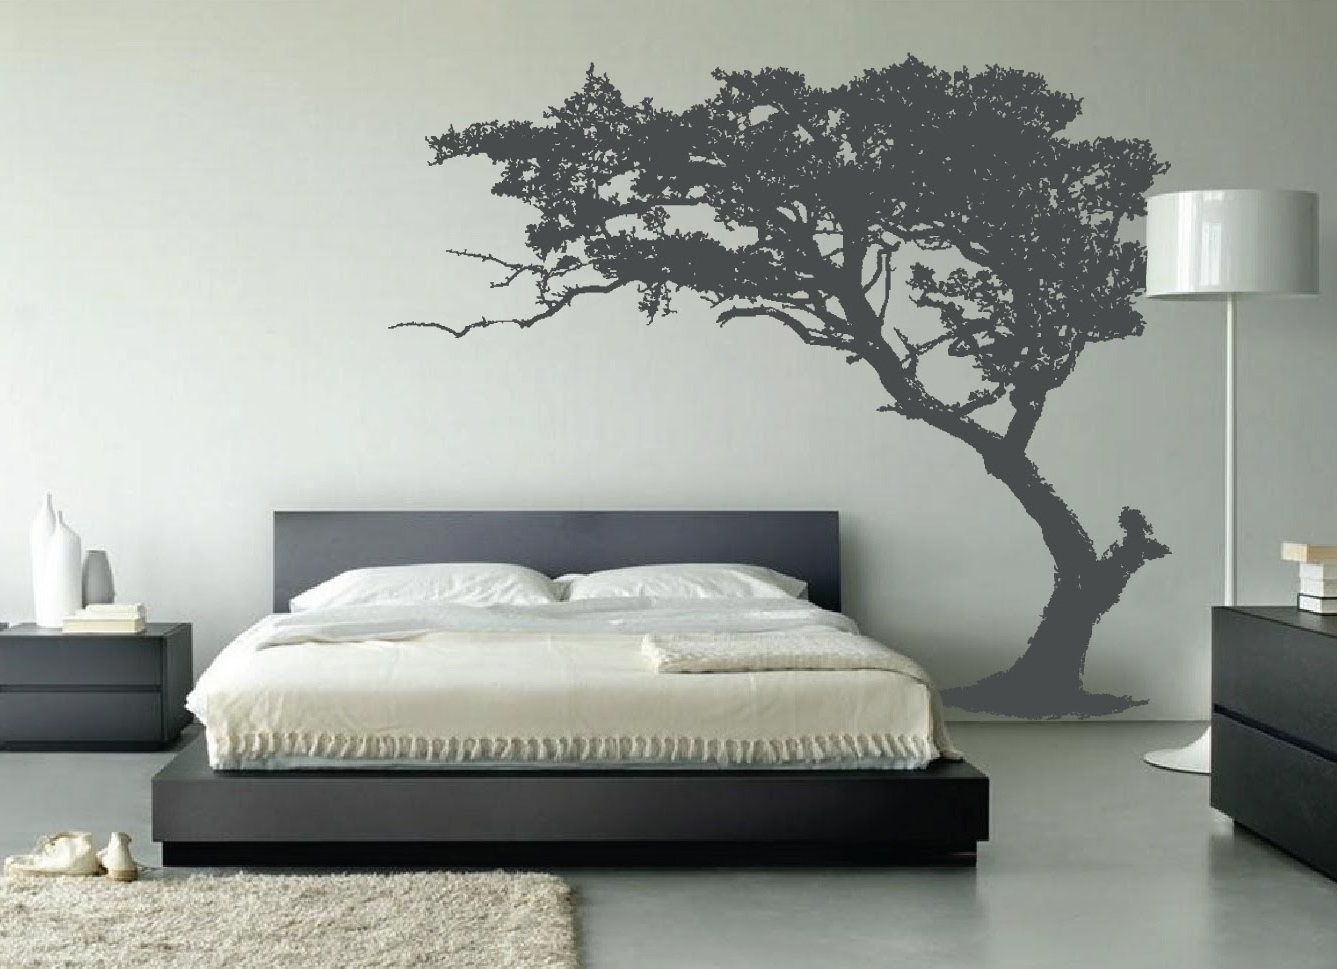 2019 Latest Over The Bed Wall Art